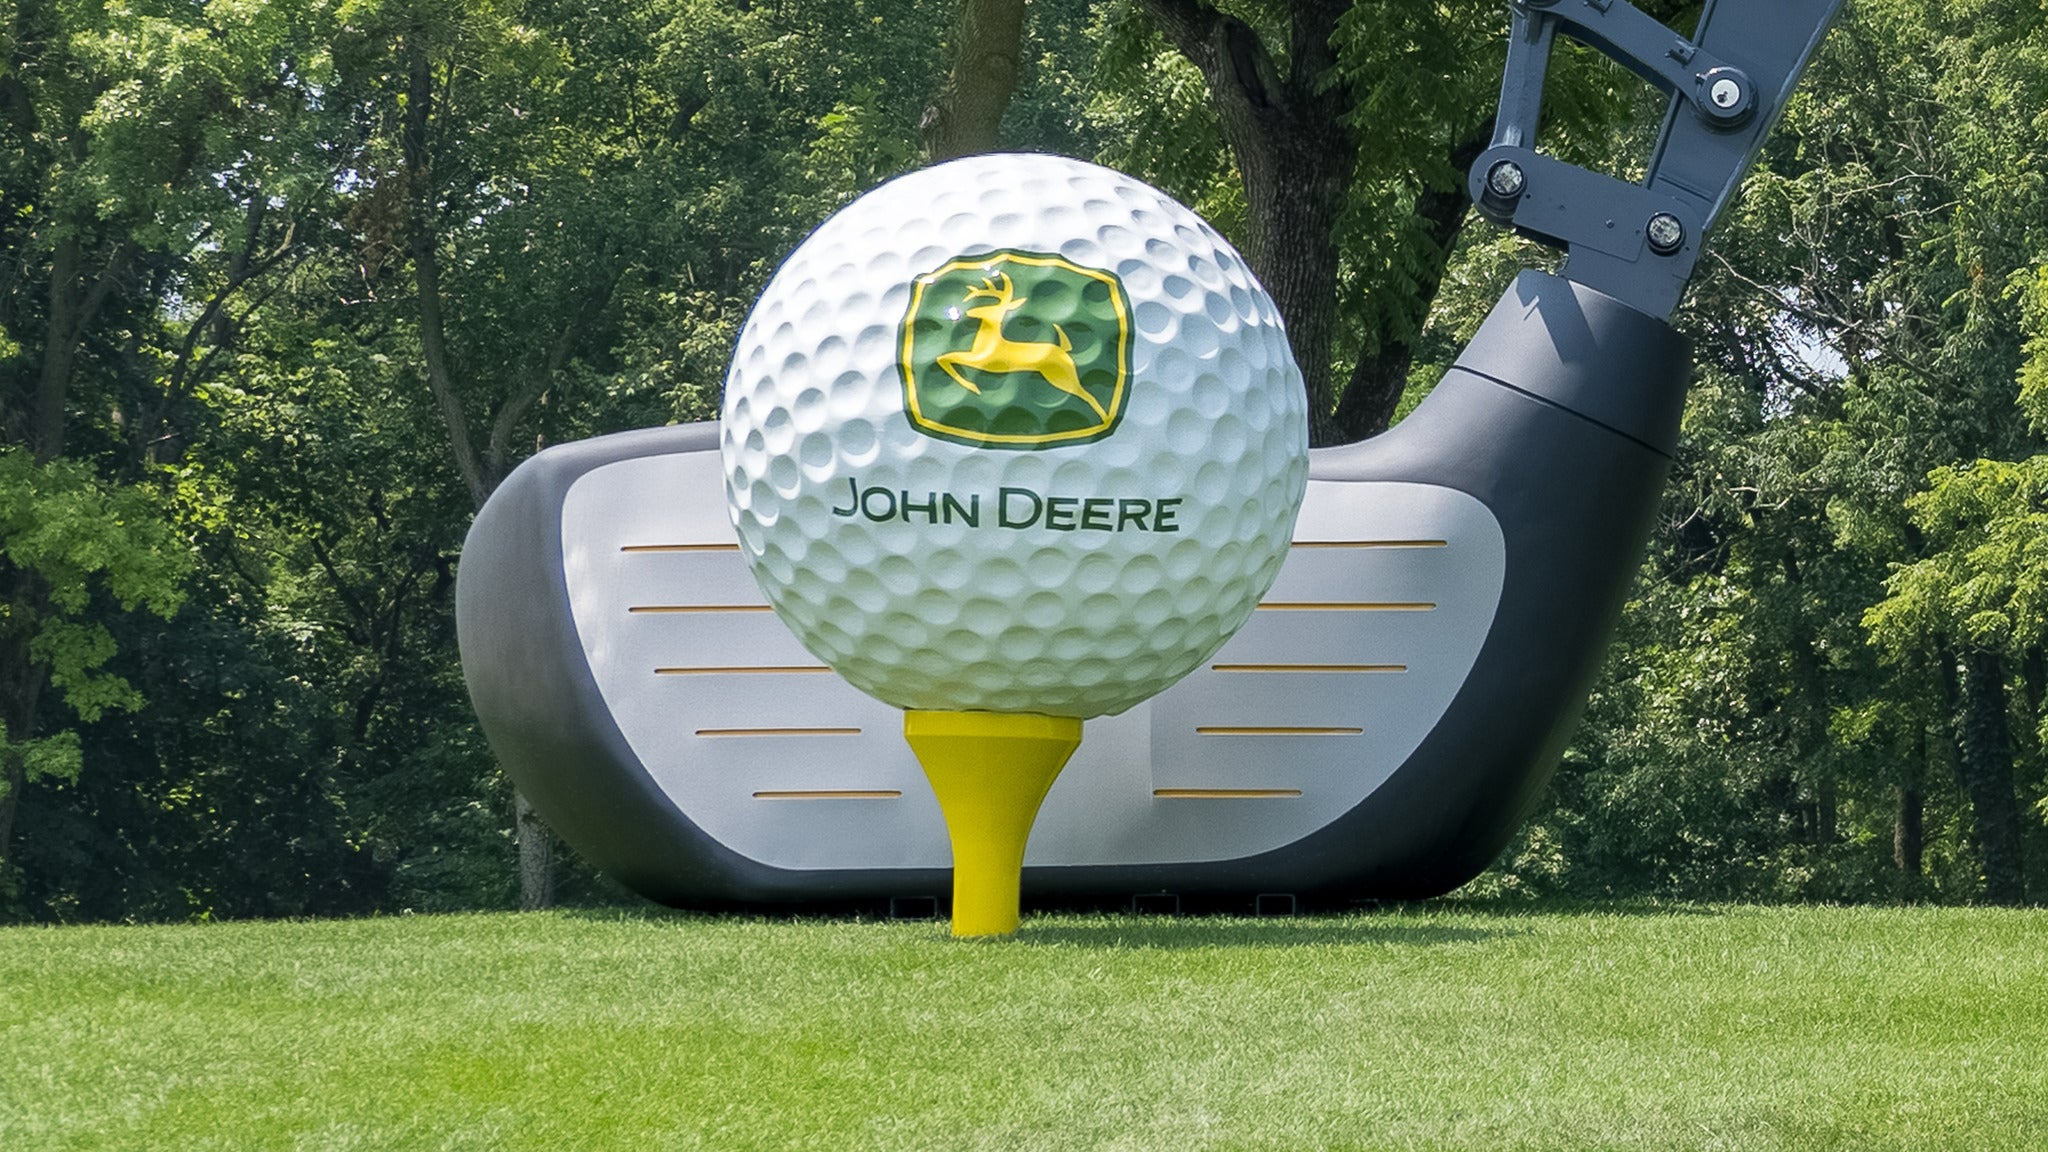 John Deere Classic Good Any One Day Ticket at TPC Deere Run